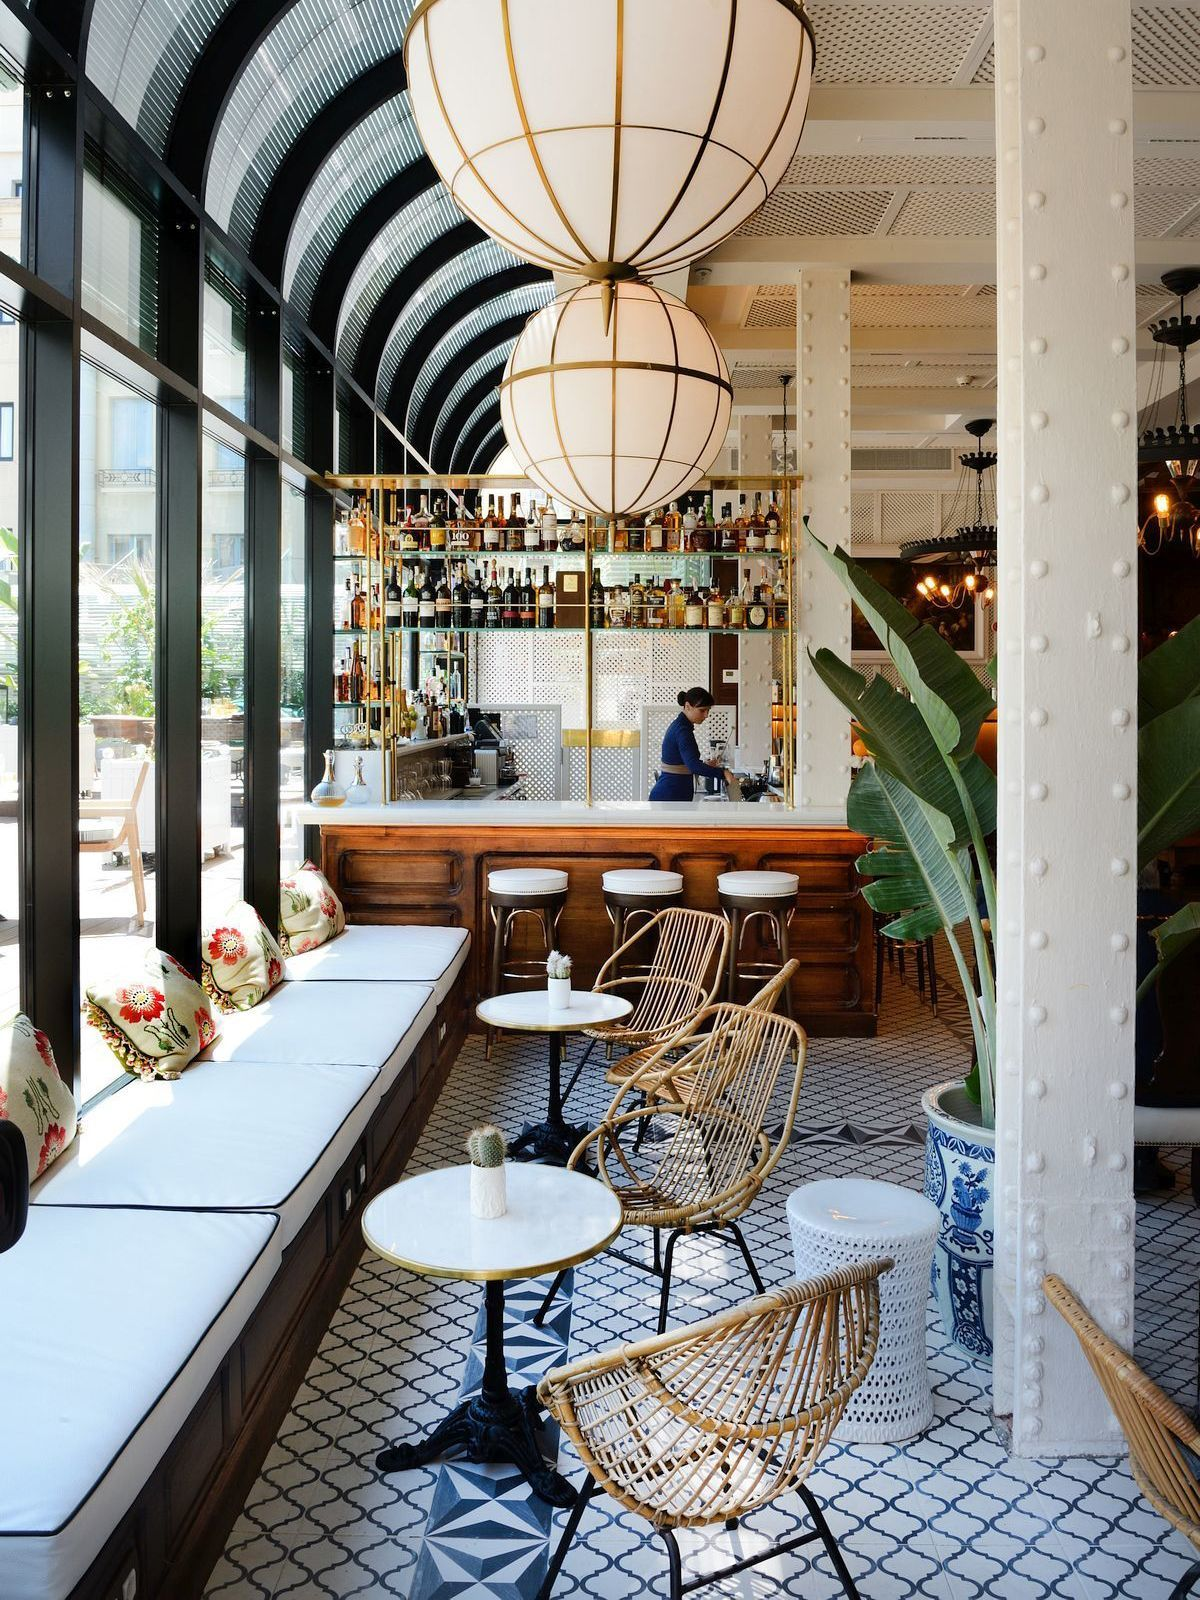 Plantation colonial style at cotton house hotel in barcelona via coco kelley